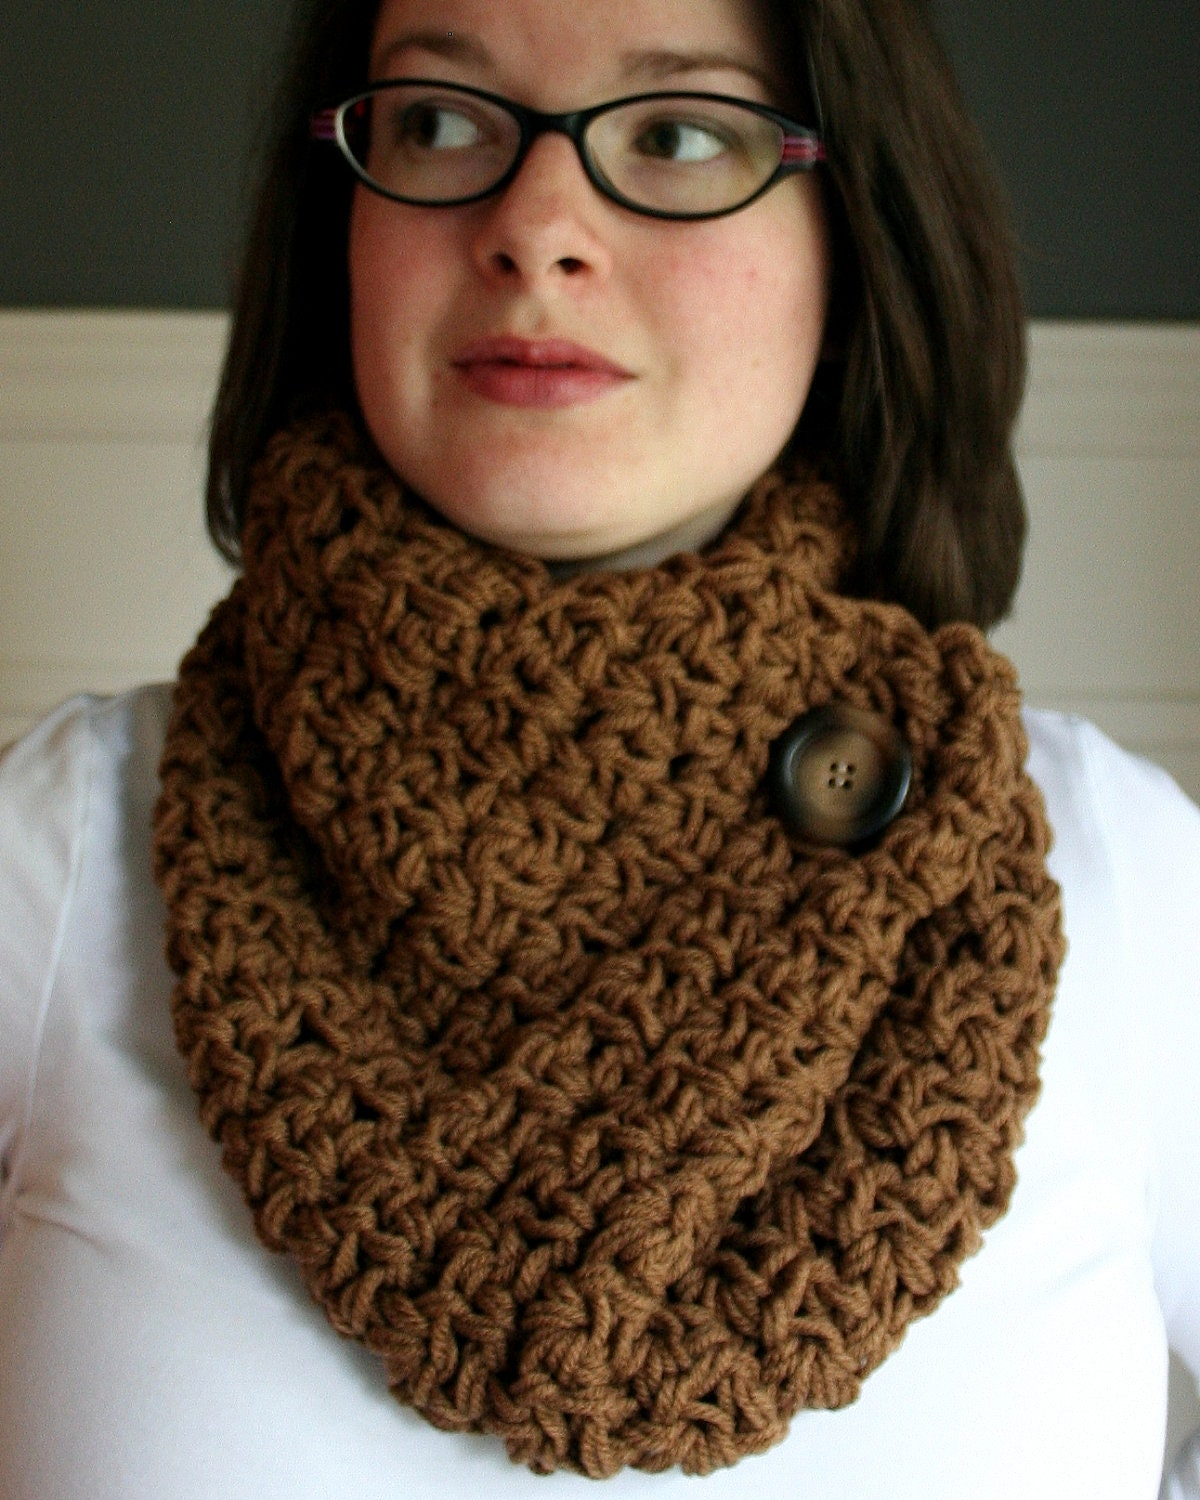 Crochet Pattern For Infinity Scarf With Buttons : Crocheted Dark Purple Infinity Cowl Neck Scarf By ...